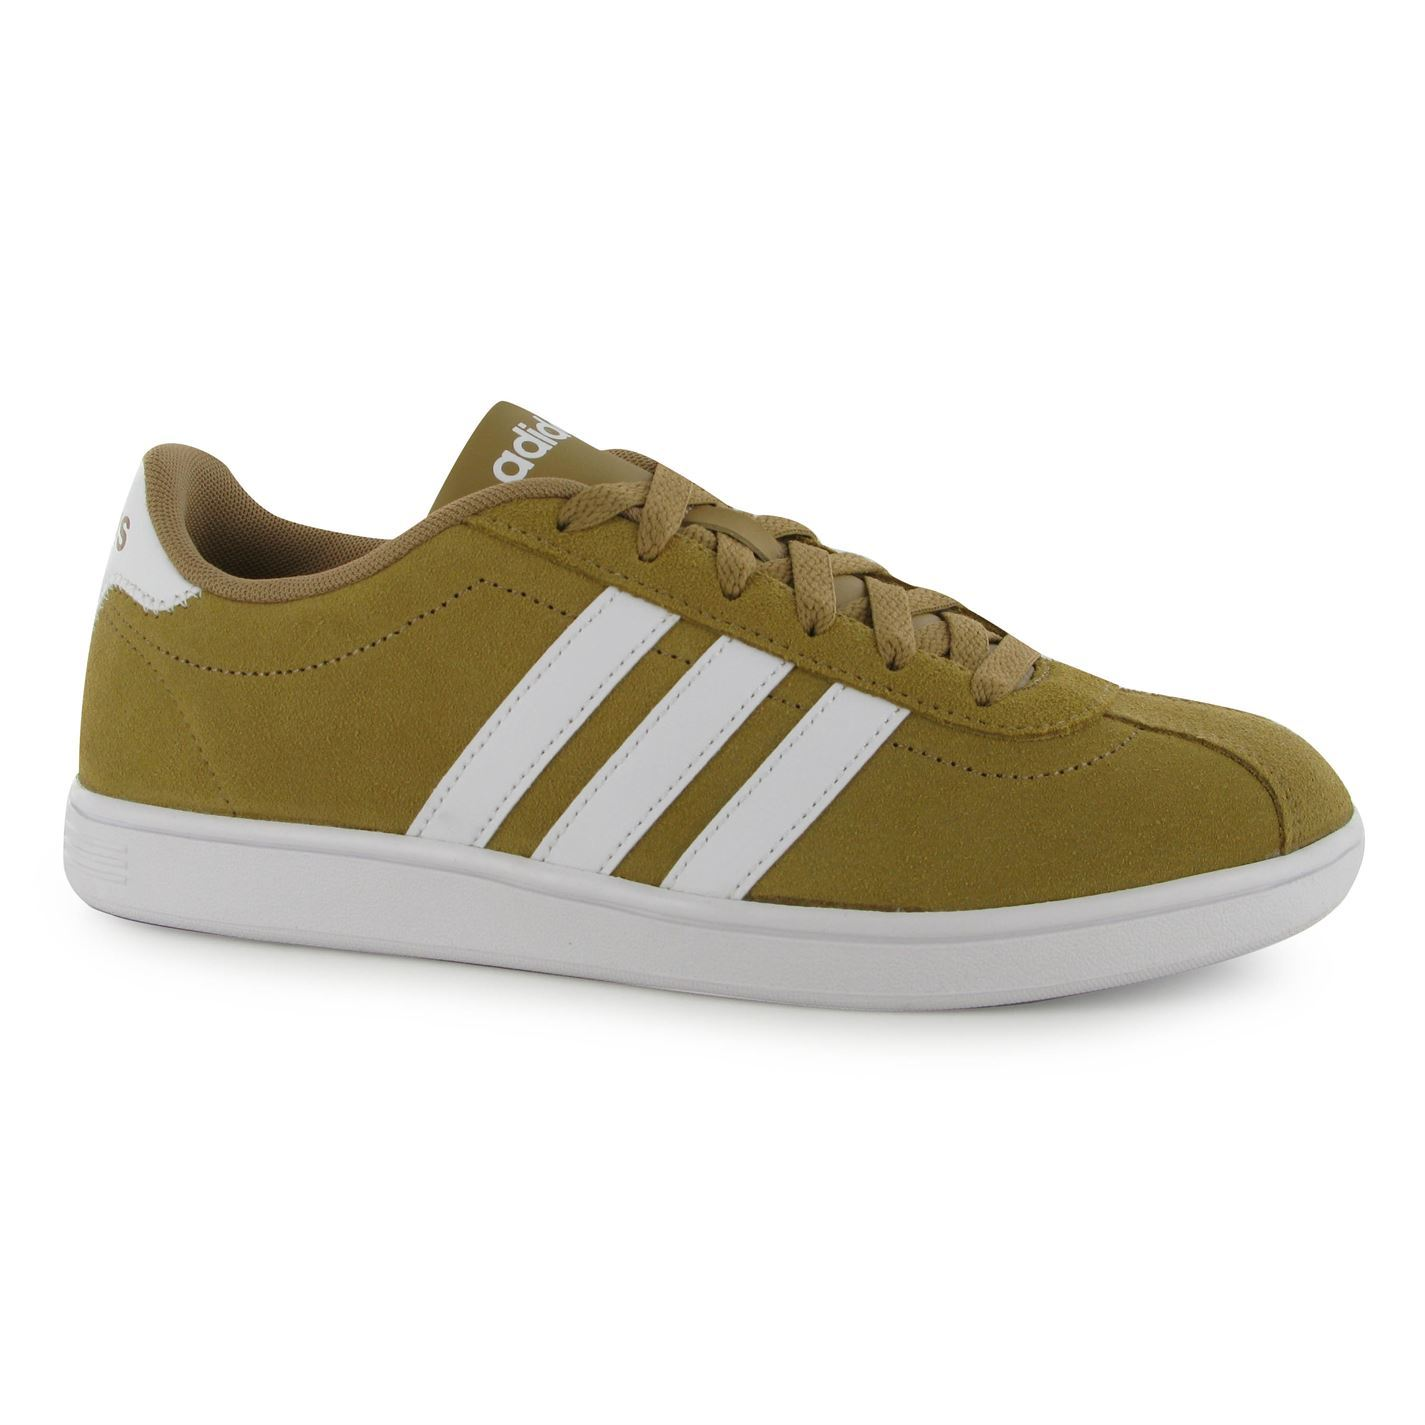 6e75b20563d868 Adidas VL Neo Court Suede Trainers